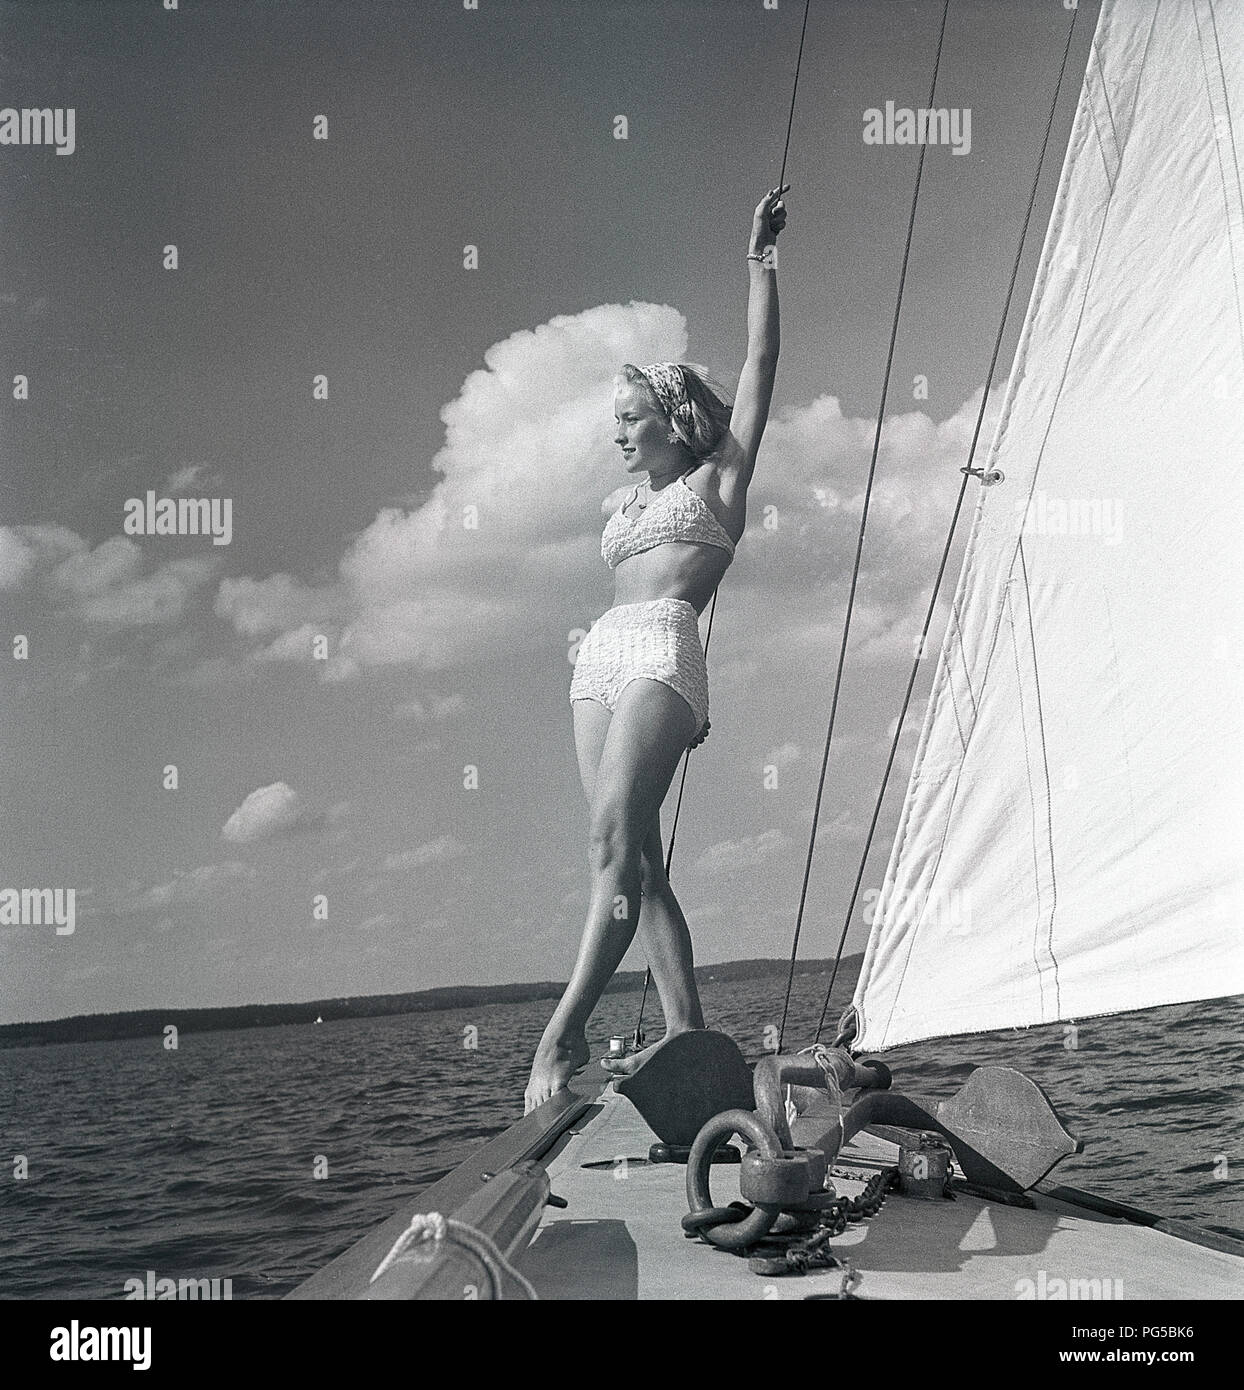 1940s sailing boat. A young woman is aboard a fashionable sailing boat and is standing on deck when it cruises forward with wind in the sails. She is wearing a typical 1940s two piece bathing suit.  Sweden 1946 Photo Kristoffersson ref AC101-4 - Stock Image